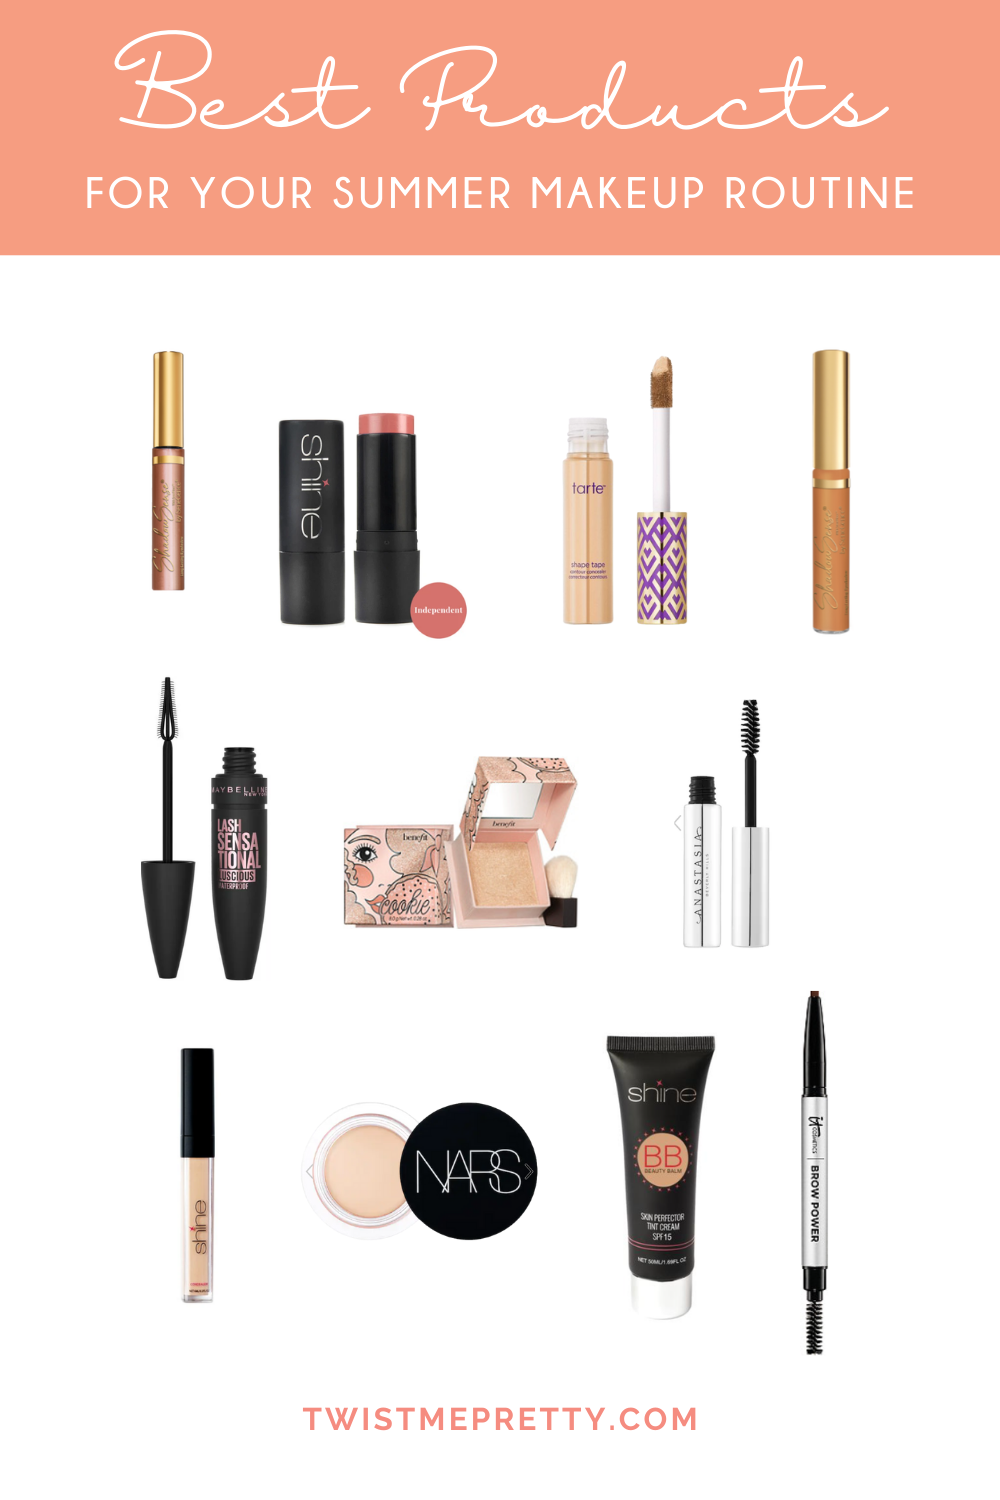 makeup products that will give you a natural glow you'll love. www.twistmepretty.com